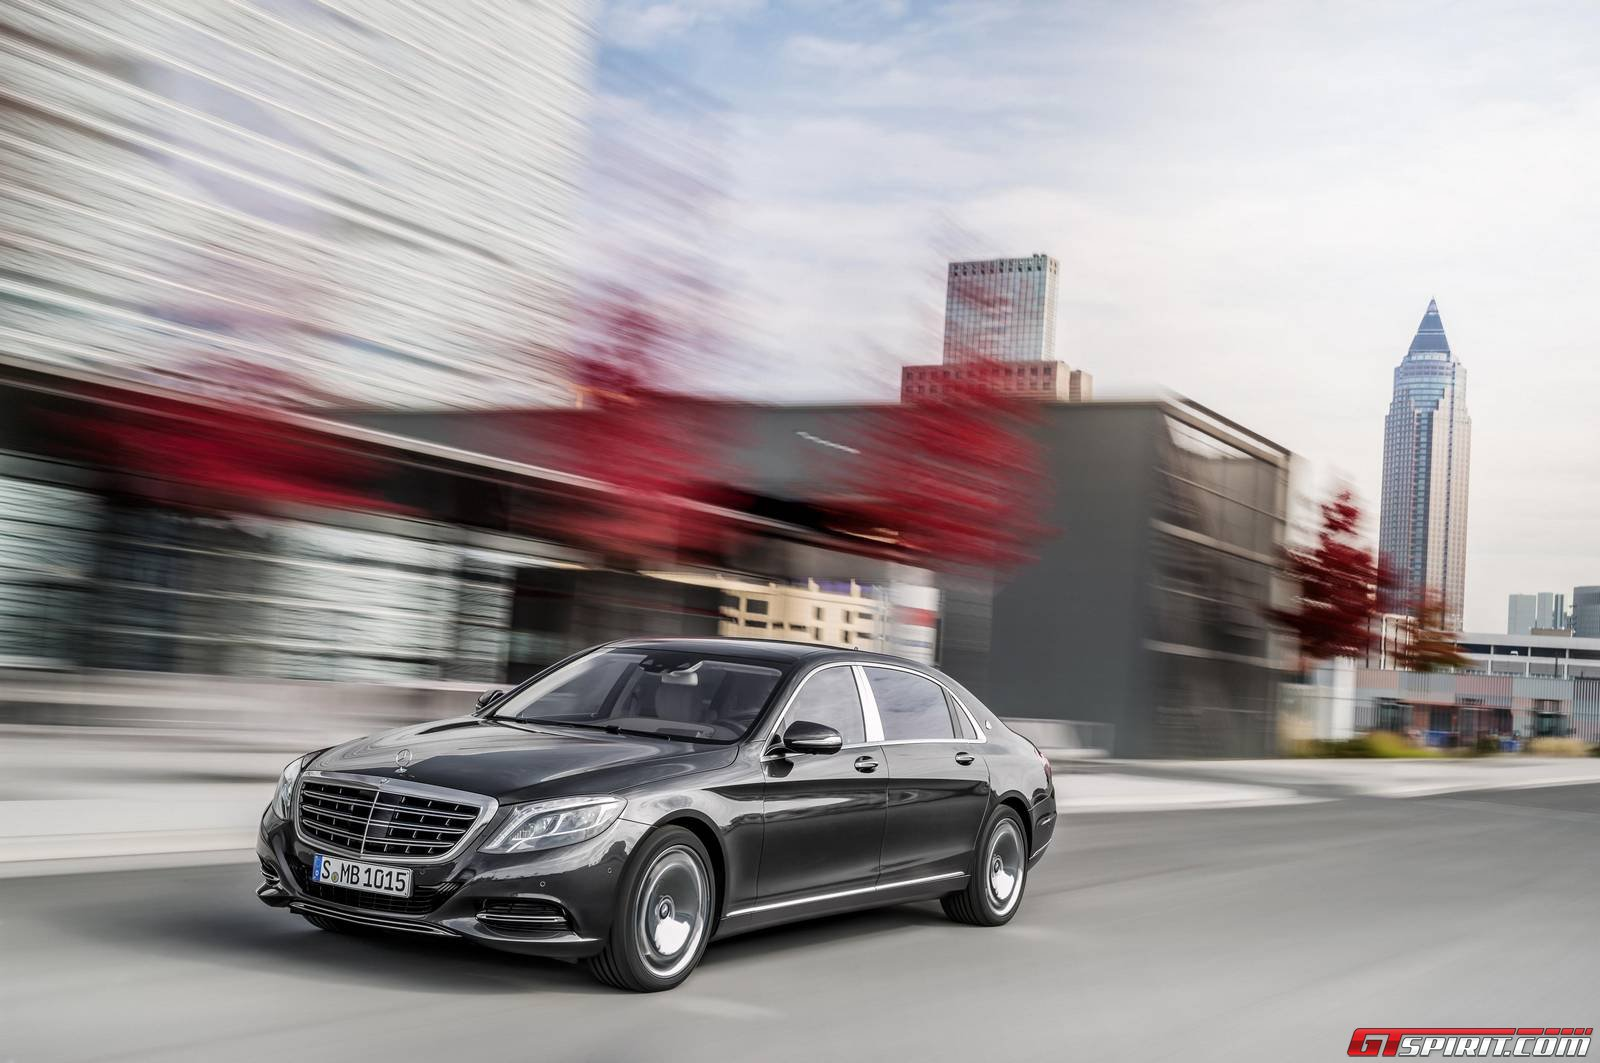 2015 Mercedes-Maybach S-Class